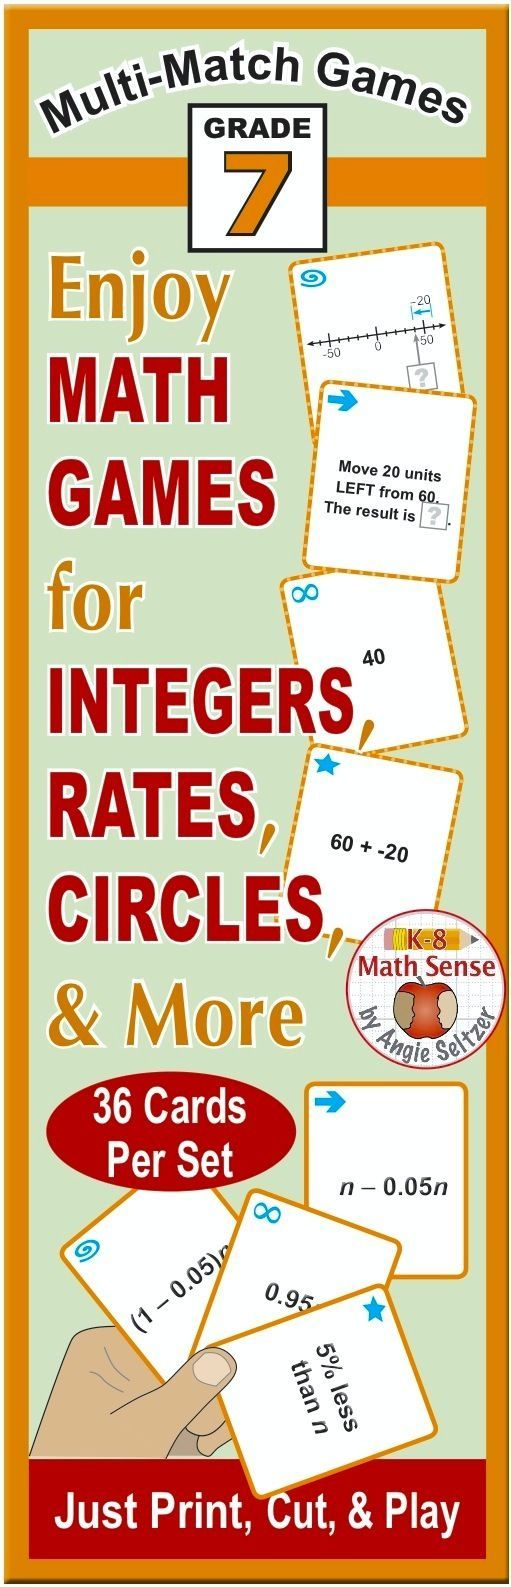 This bundle includes 14 printable sets of 36 cards for Grade 7 math. Topics include integers, expressions, area and perimeters of circles, rates, probability, and more. Just print on plain paper, cut, and play one of four fun games in the Games Guide (inc